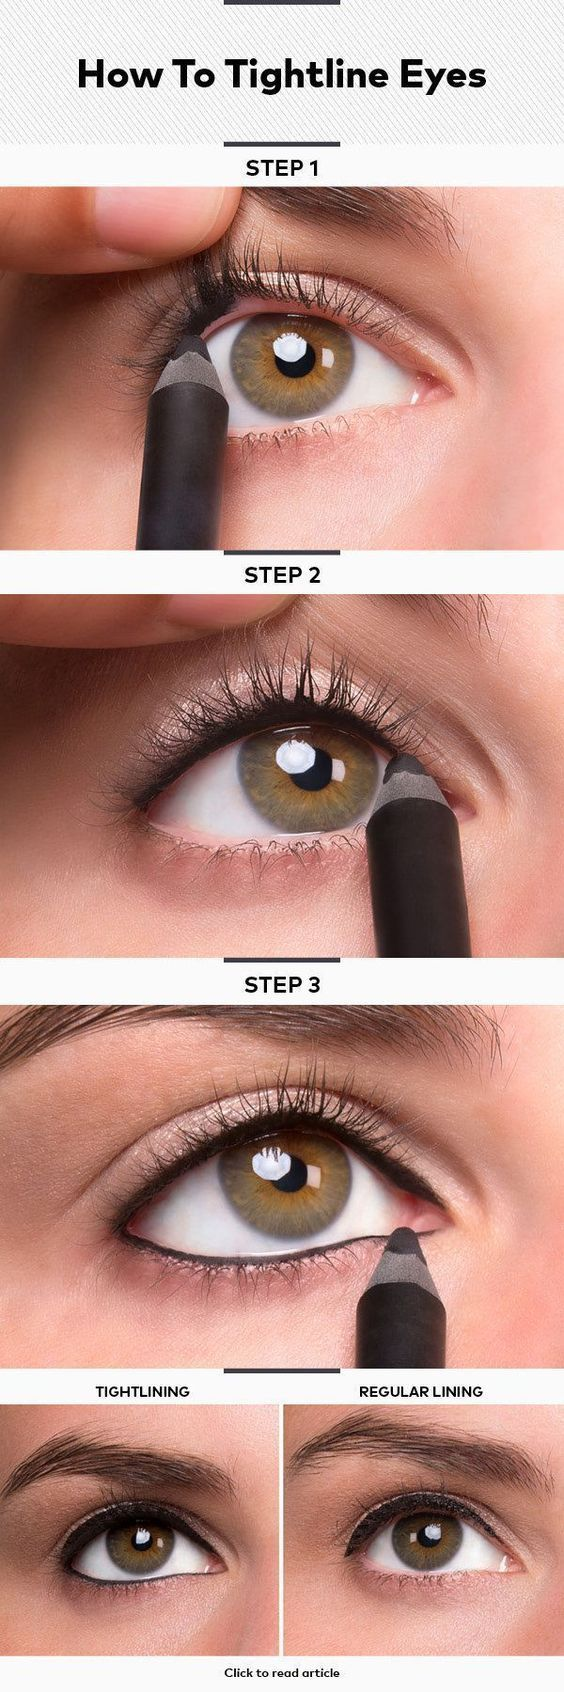 7 Tipps für den perfekten Tightline Eyeliner #beautyhacks